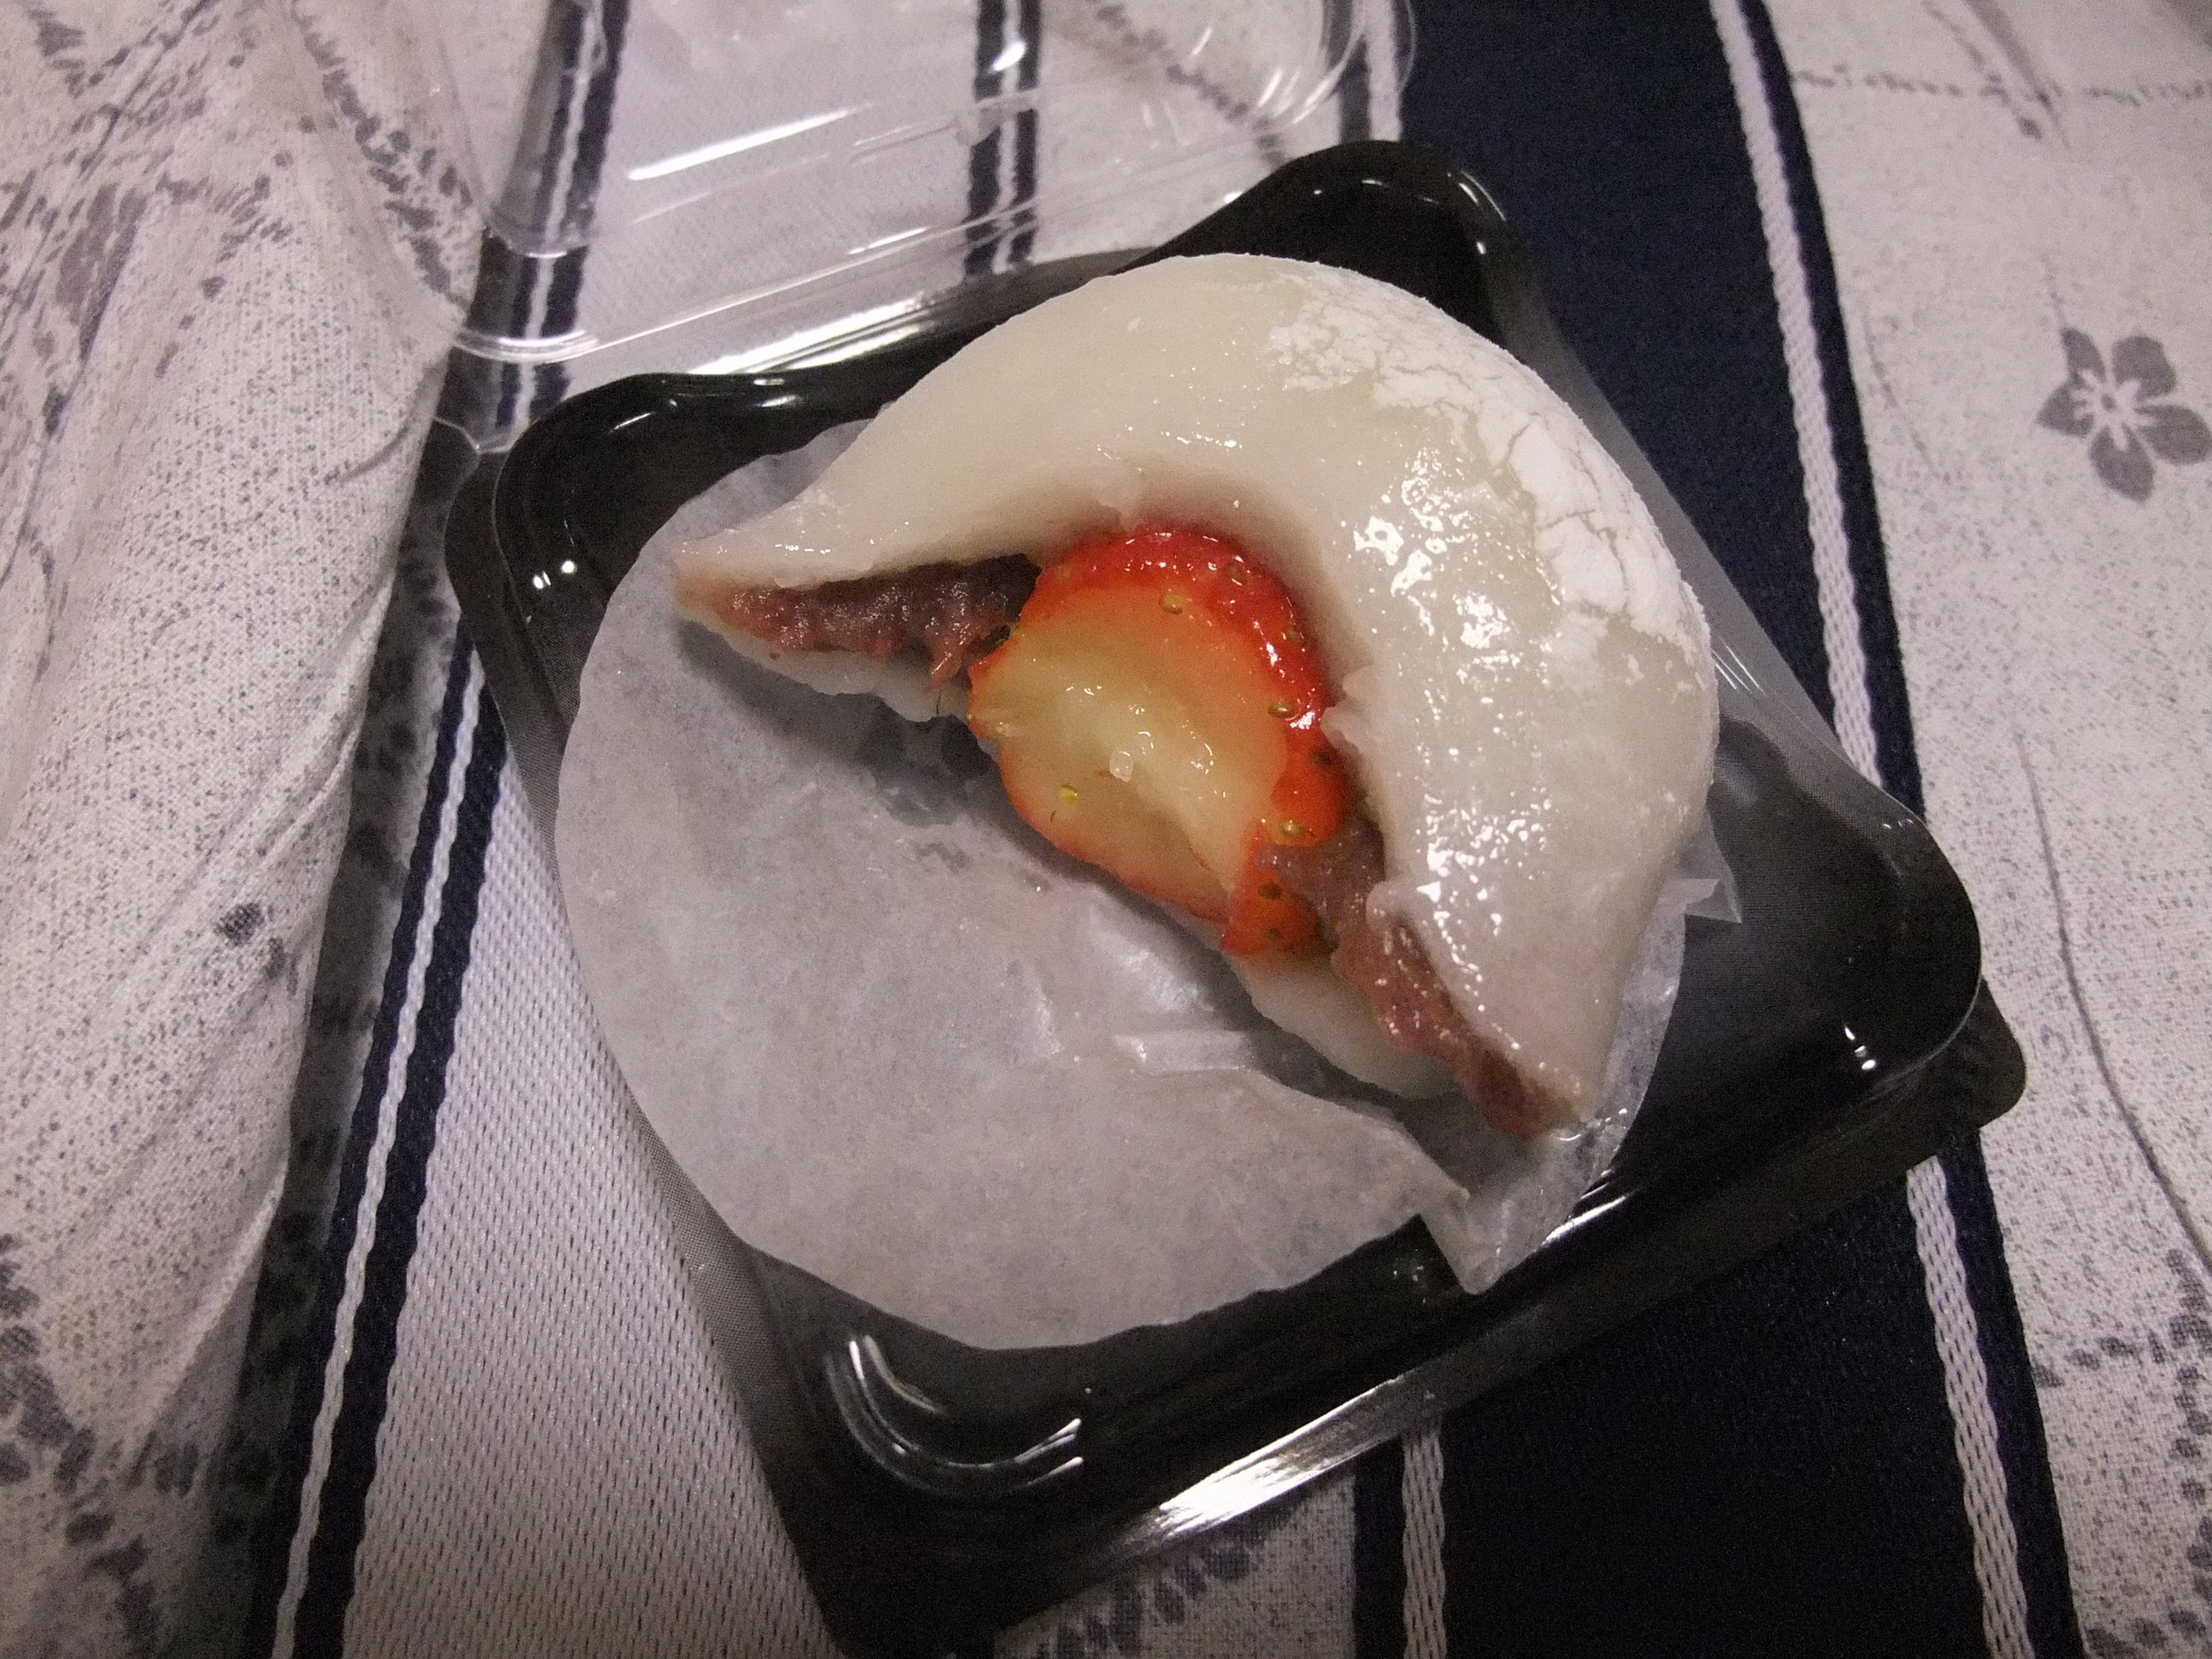 A  mochi  cake filled with a strawberry and chocolate